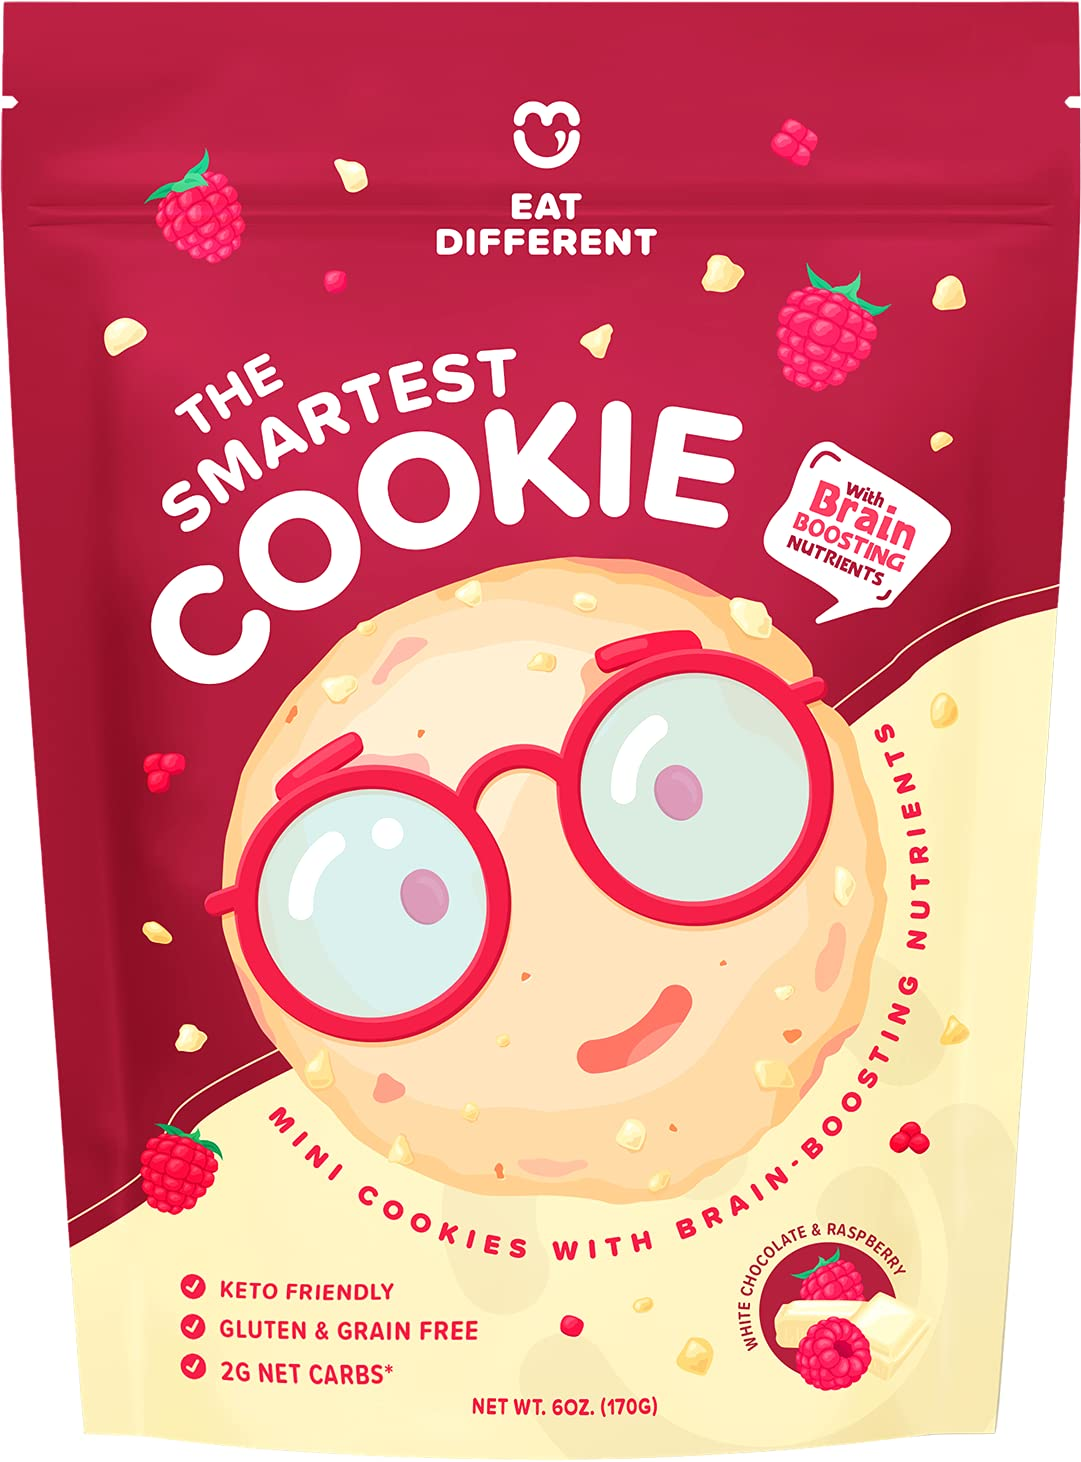 Smart Cookies, Gourmet Low Carb Keto Brain Food Protein Snack with Nootropics, Legendary Gluten Free Healthy Snacks w/ Zero Added Sugar  Perfect High IQ Foods, Diabetic & Bariatric Friendly Sweets (White Choc Raspberry)